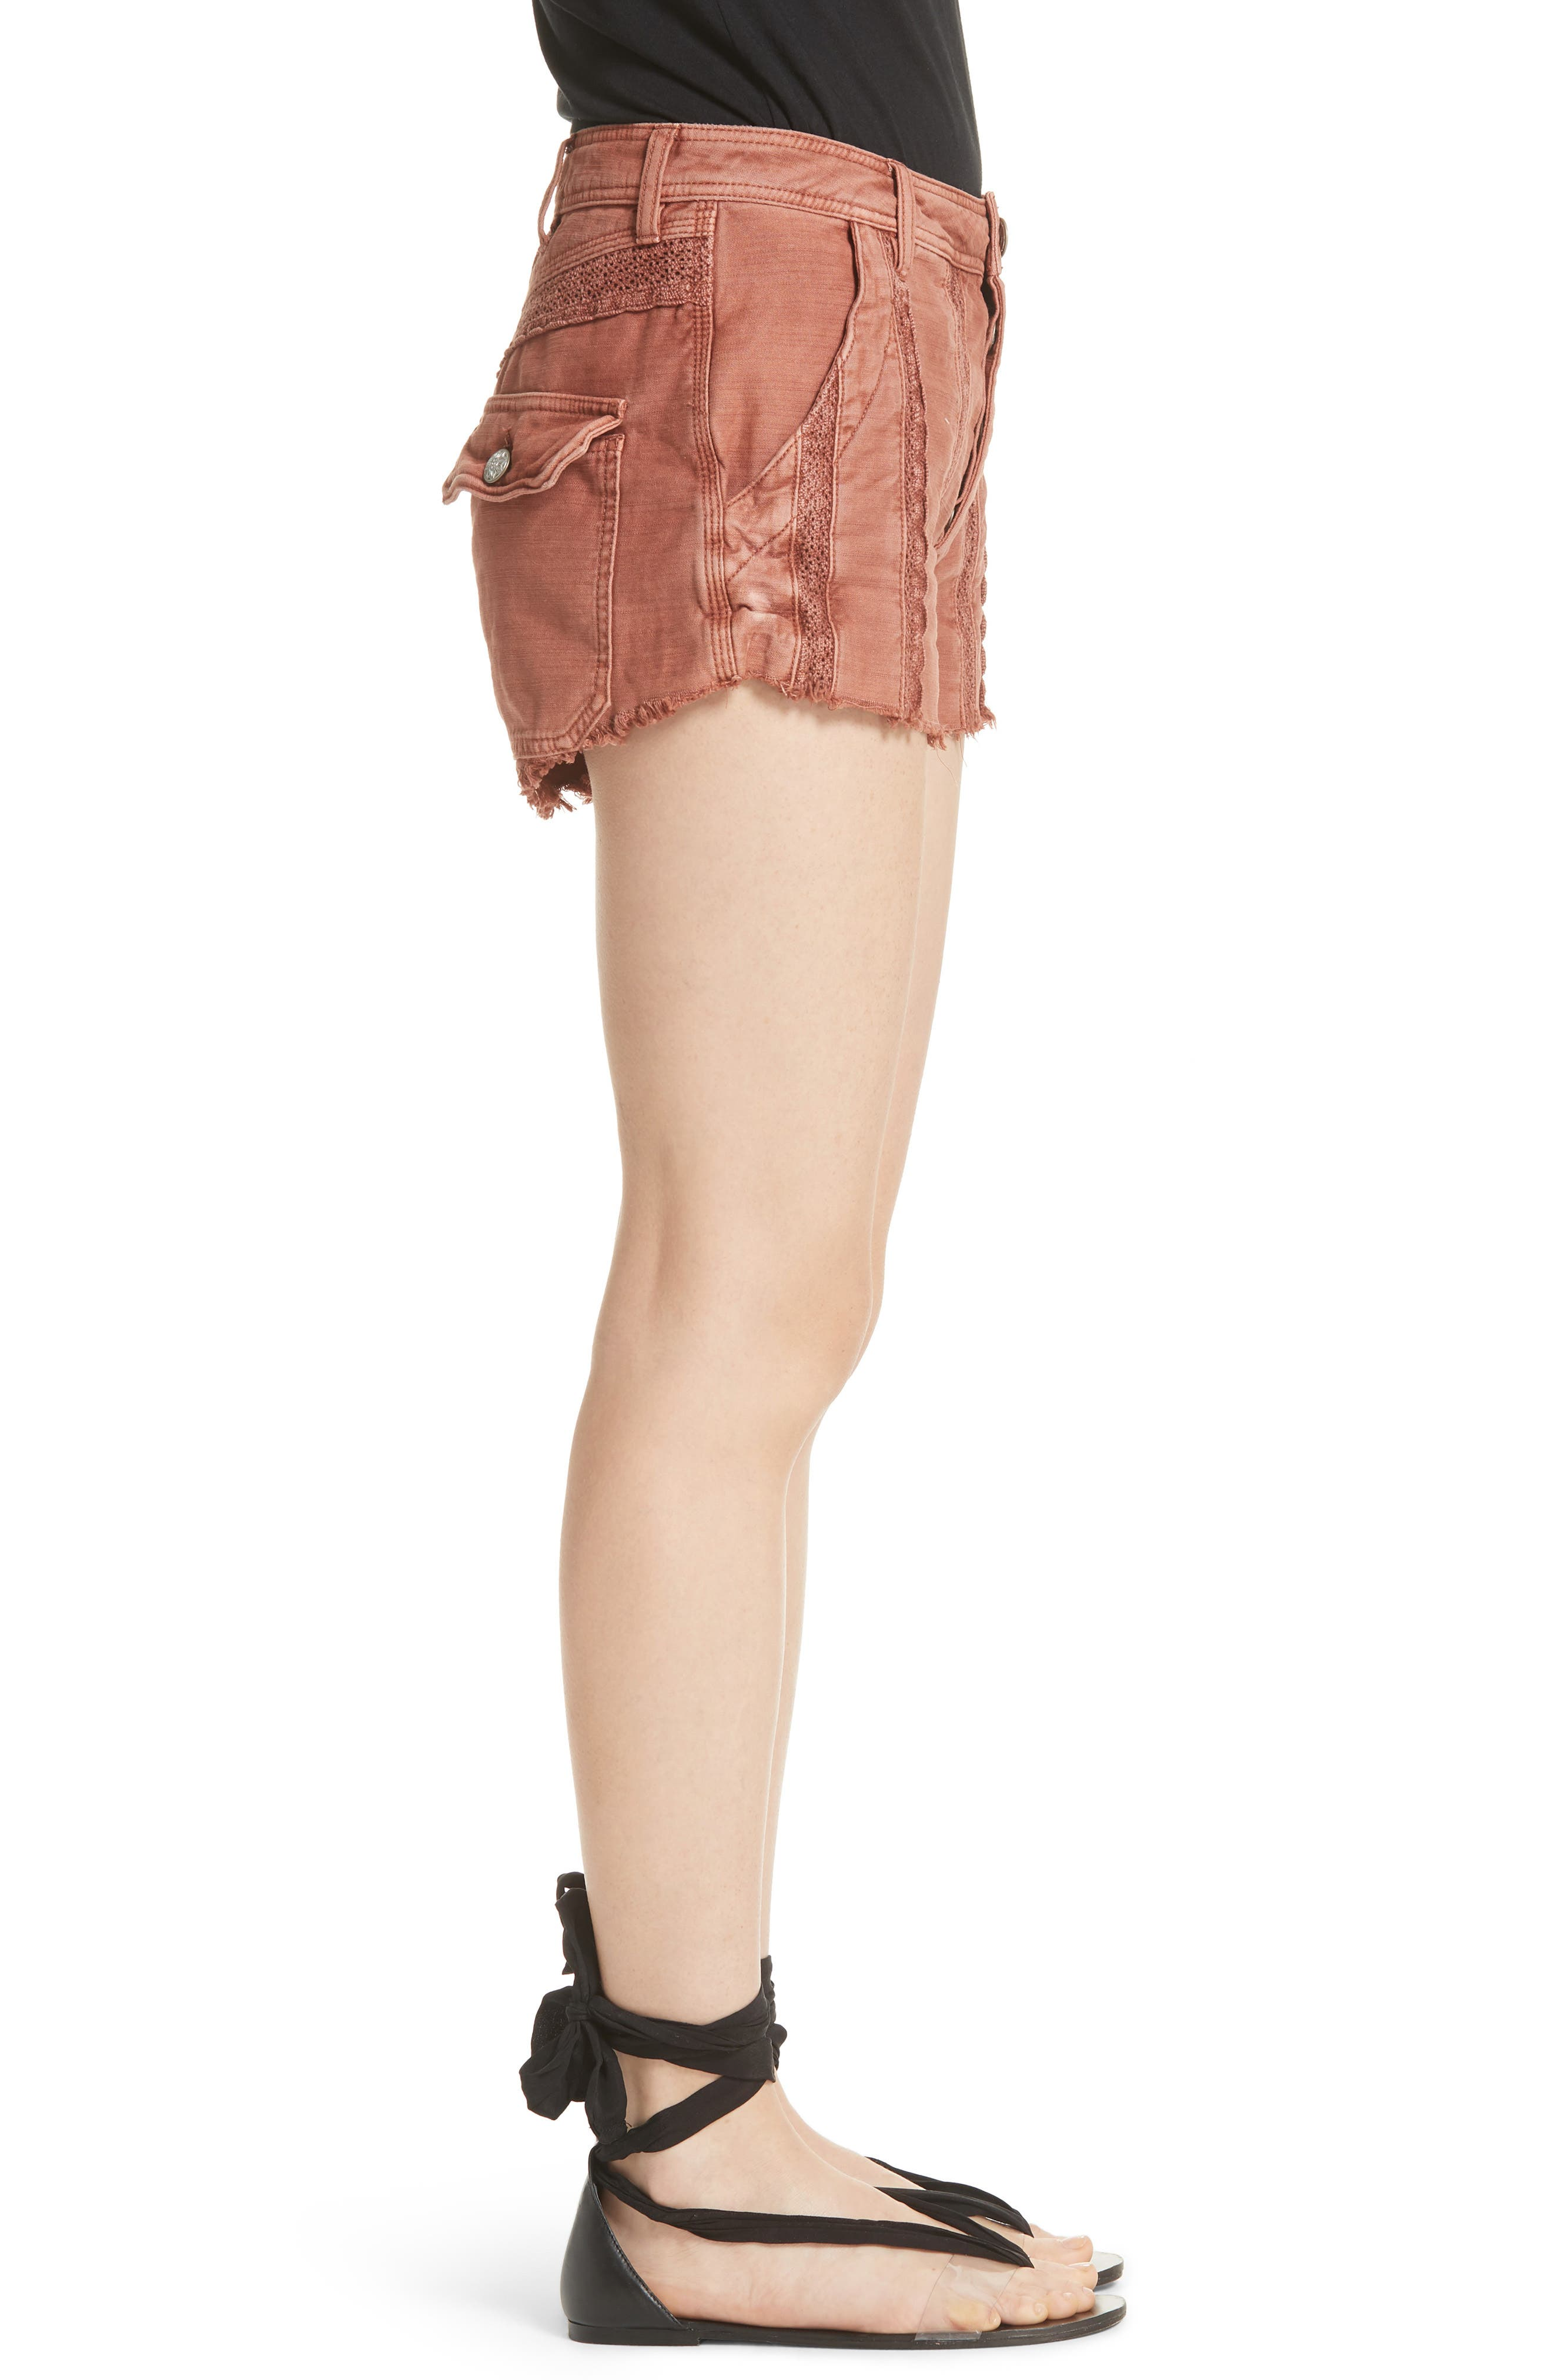 Great Expectations Lace Cutout Shorts,                             Alternate thumbnail 3, color,                             Peach